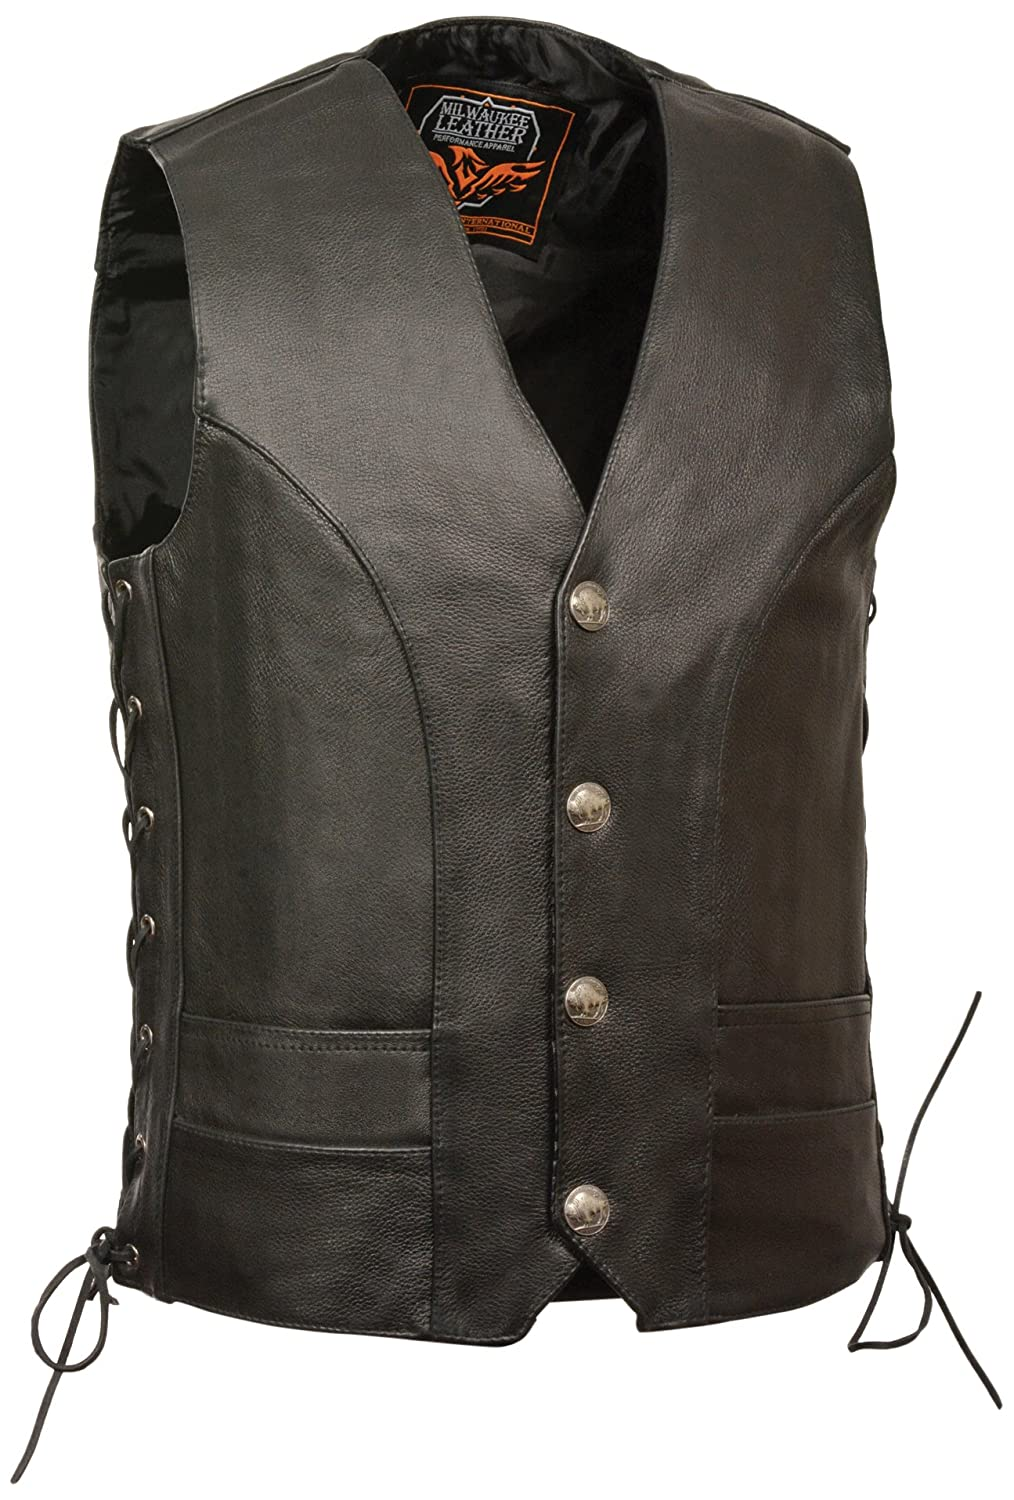 Milwaukee Mens 1.4mm Naked Cowhide Leather Laces Vest Black, Size 52